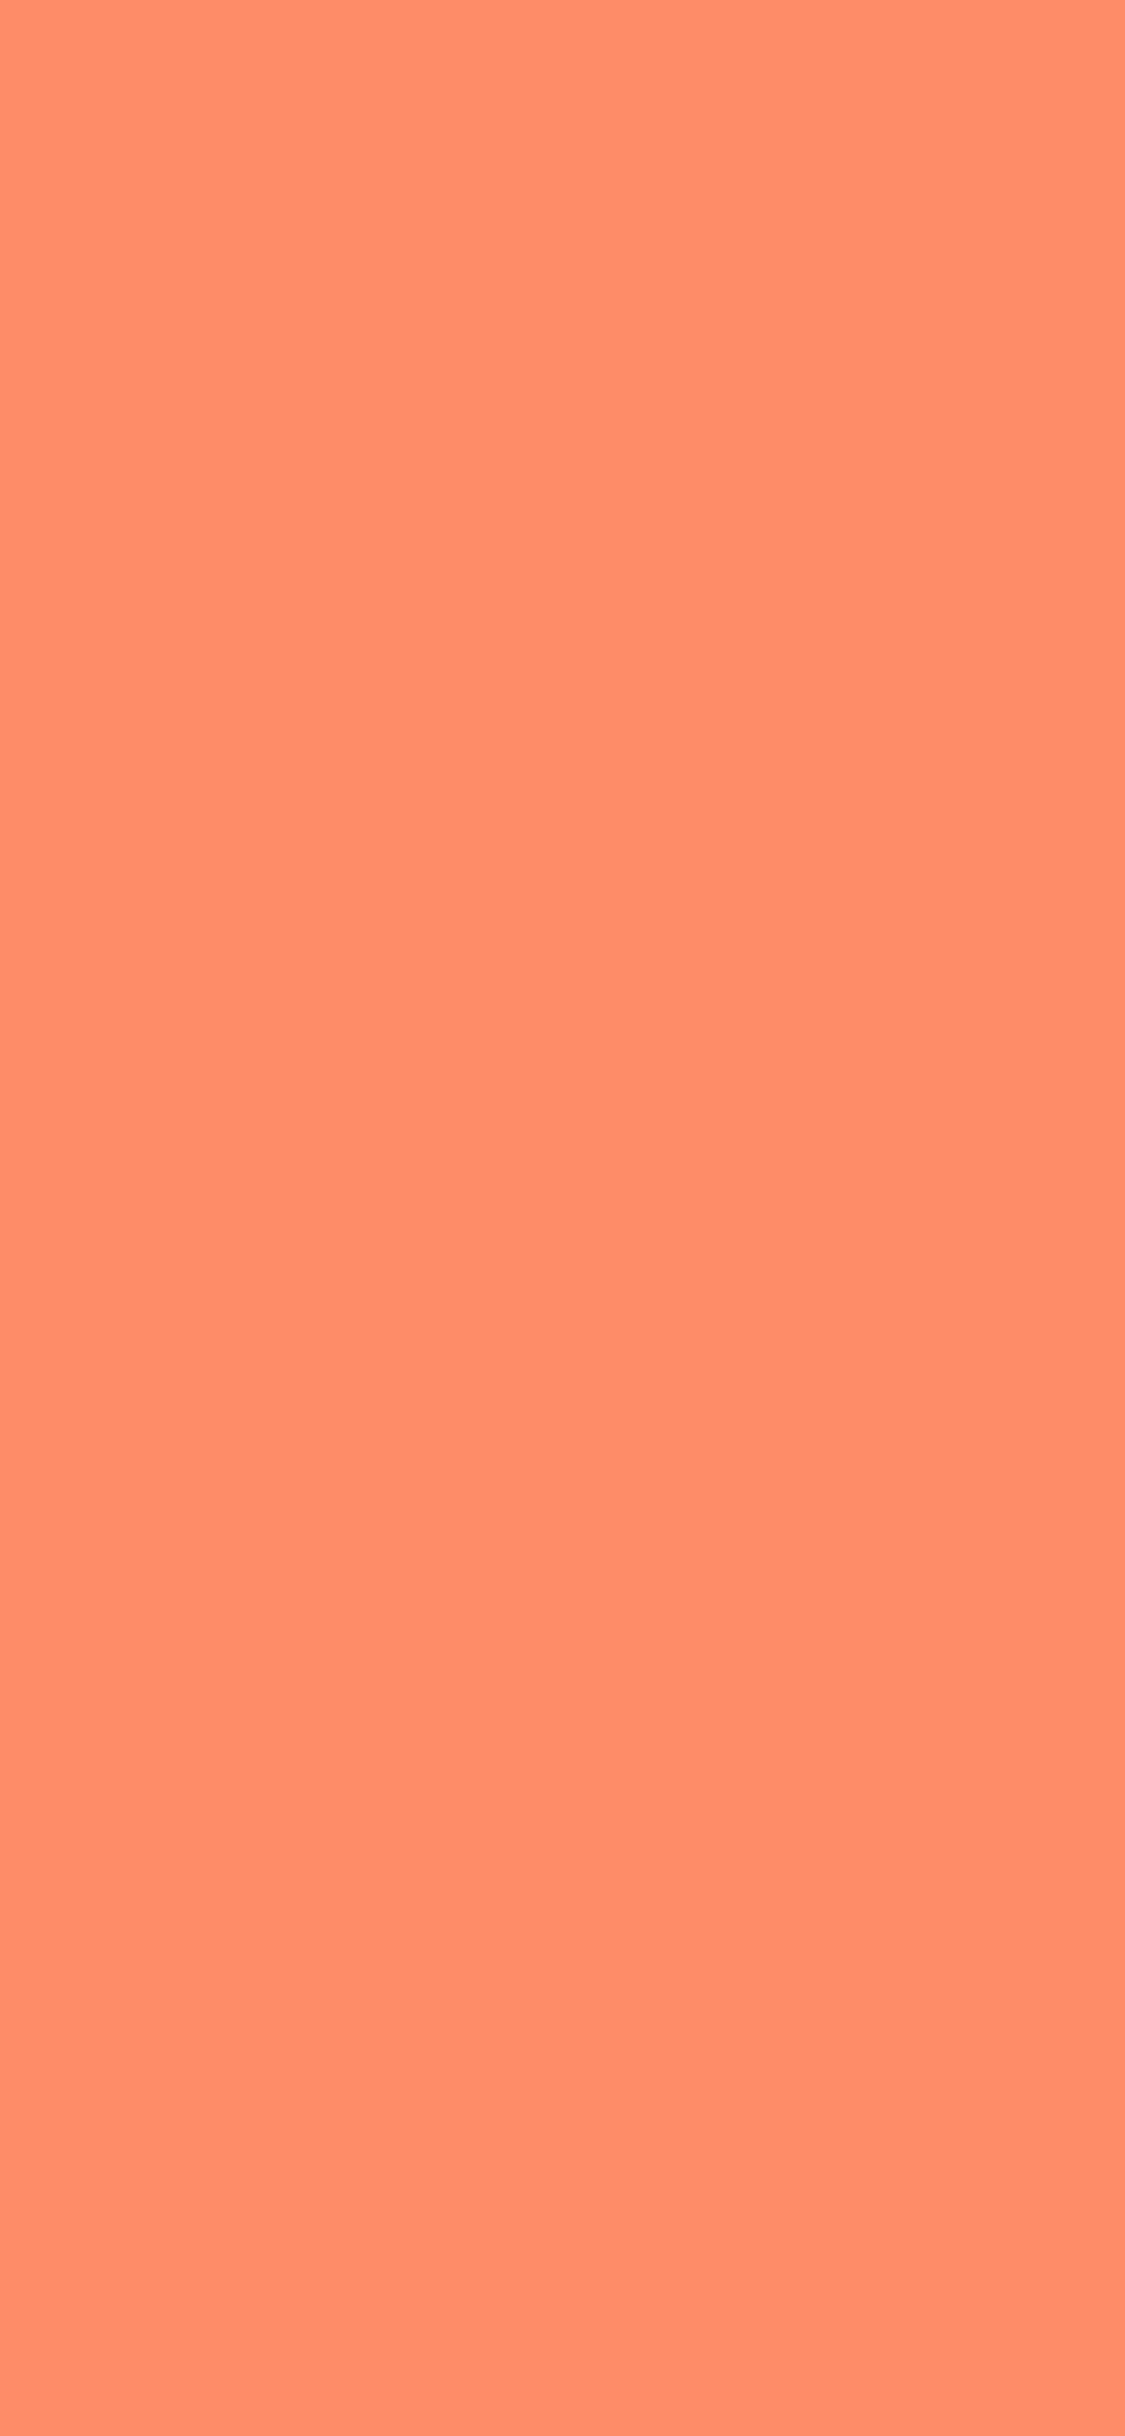 1125x2436 Salmon Solid Color Background